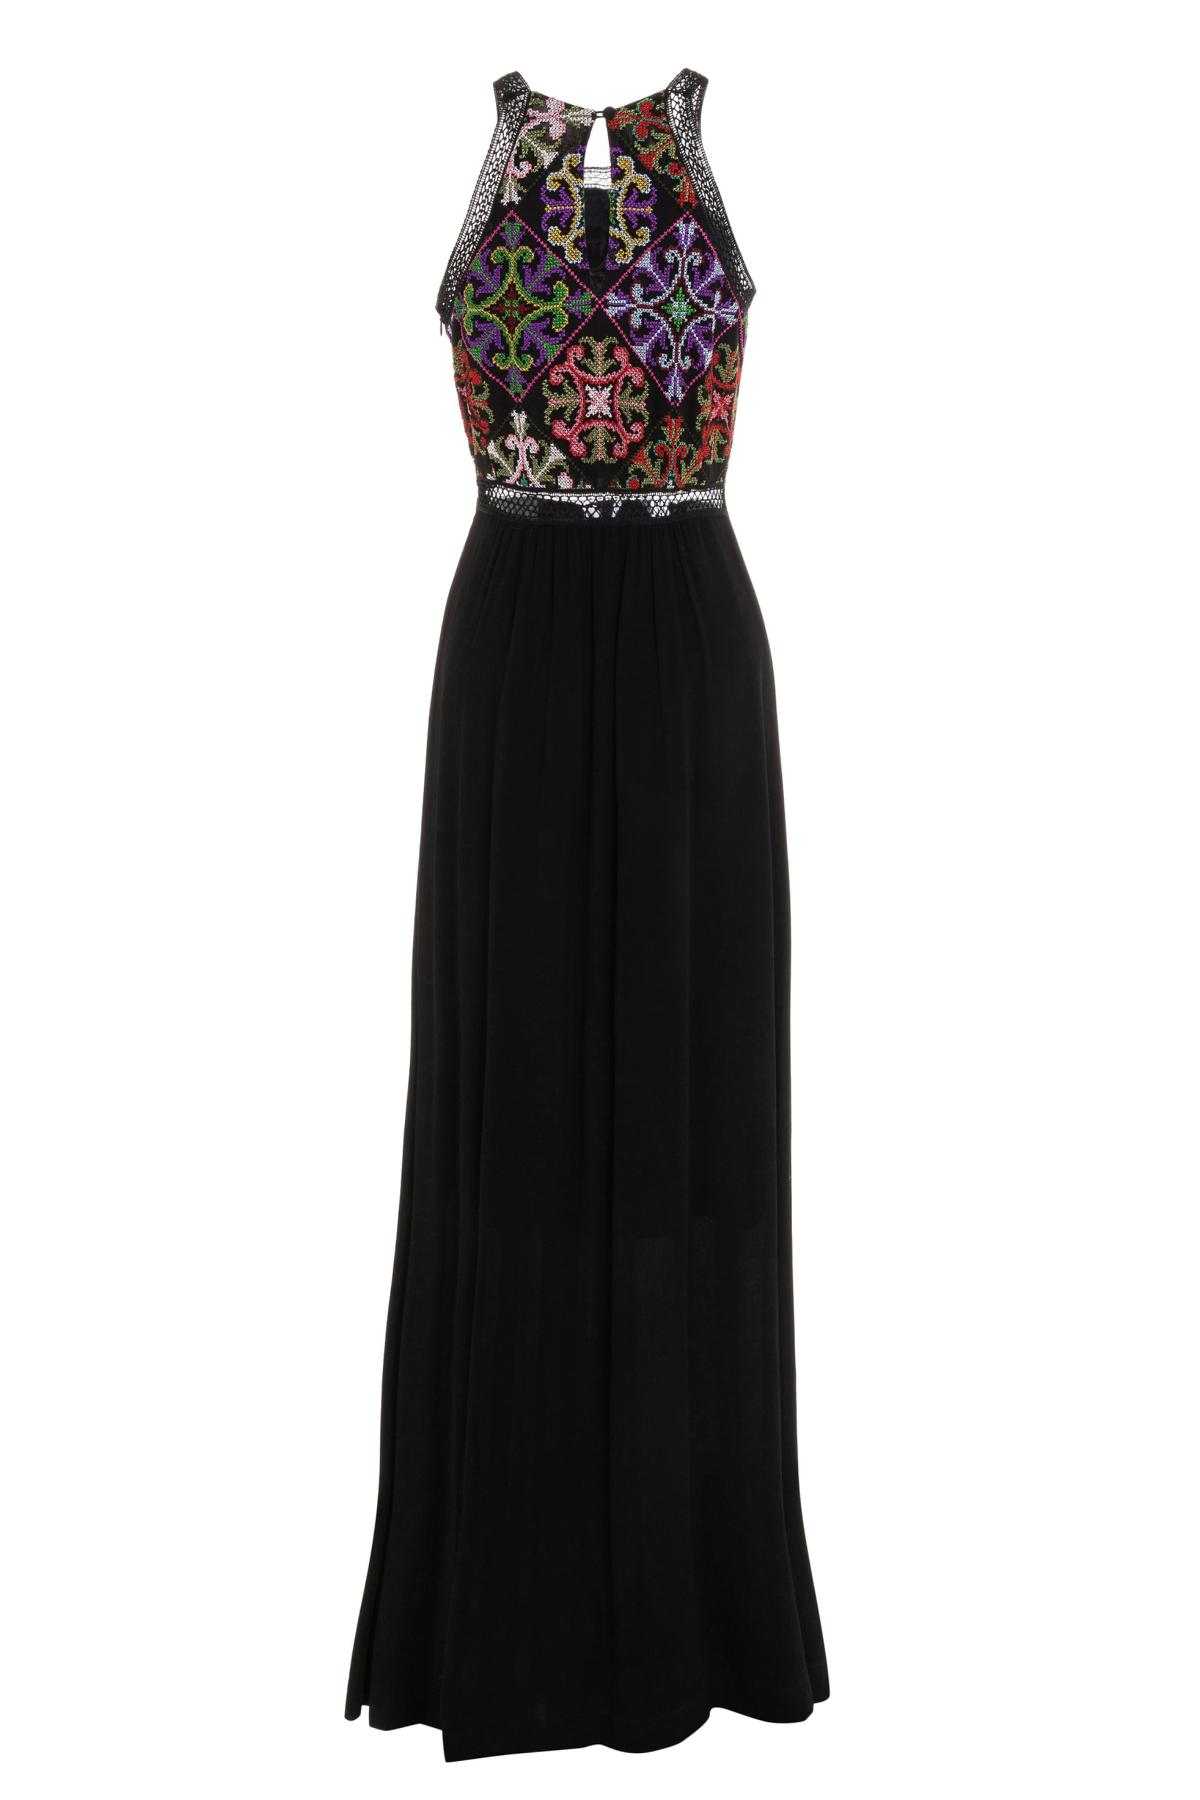 PRODUCT_PICTURE_PRE_7Ana Alcazar Maxikleid Salwy PRODUCT_PICTURE_SUF_7